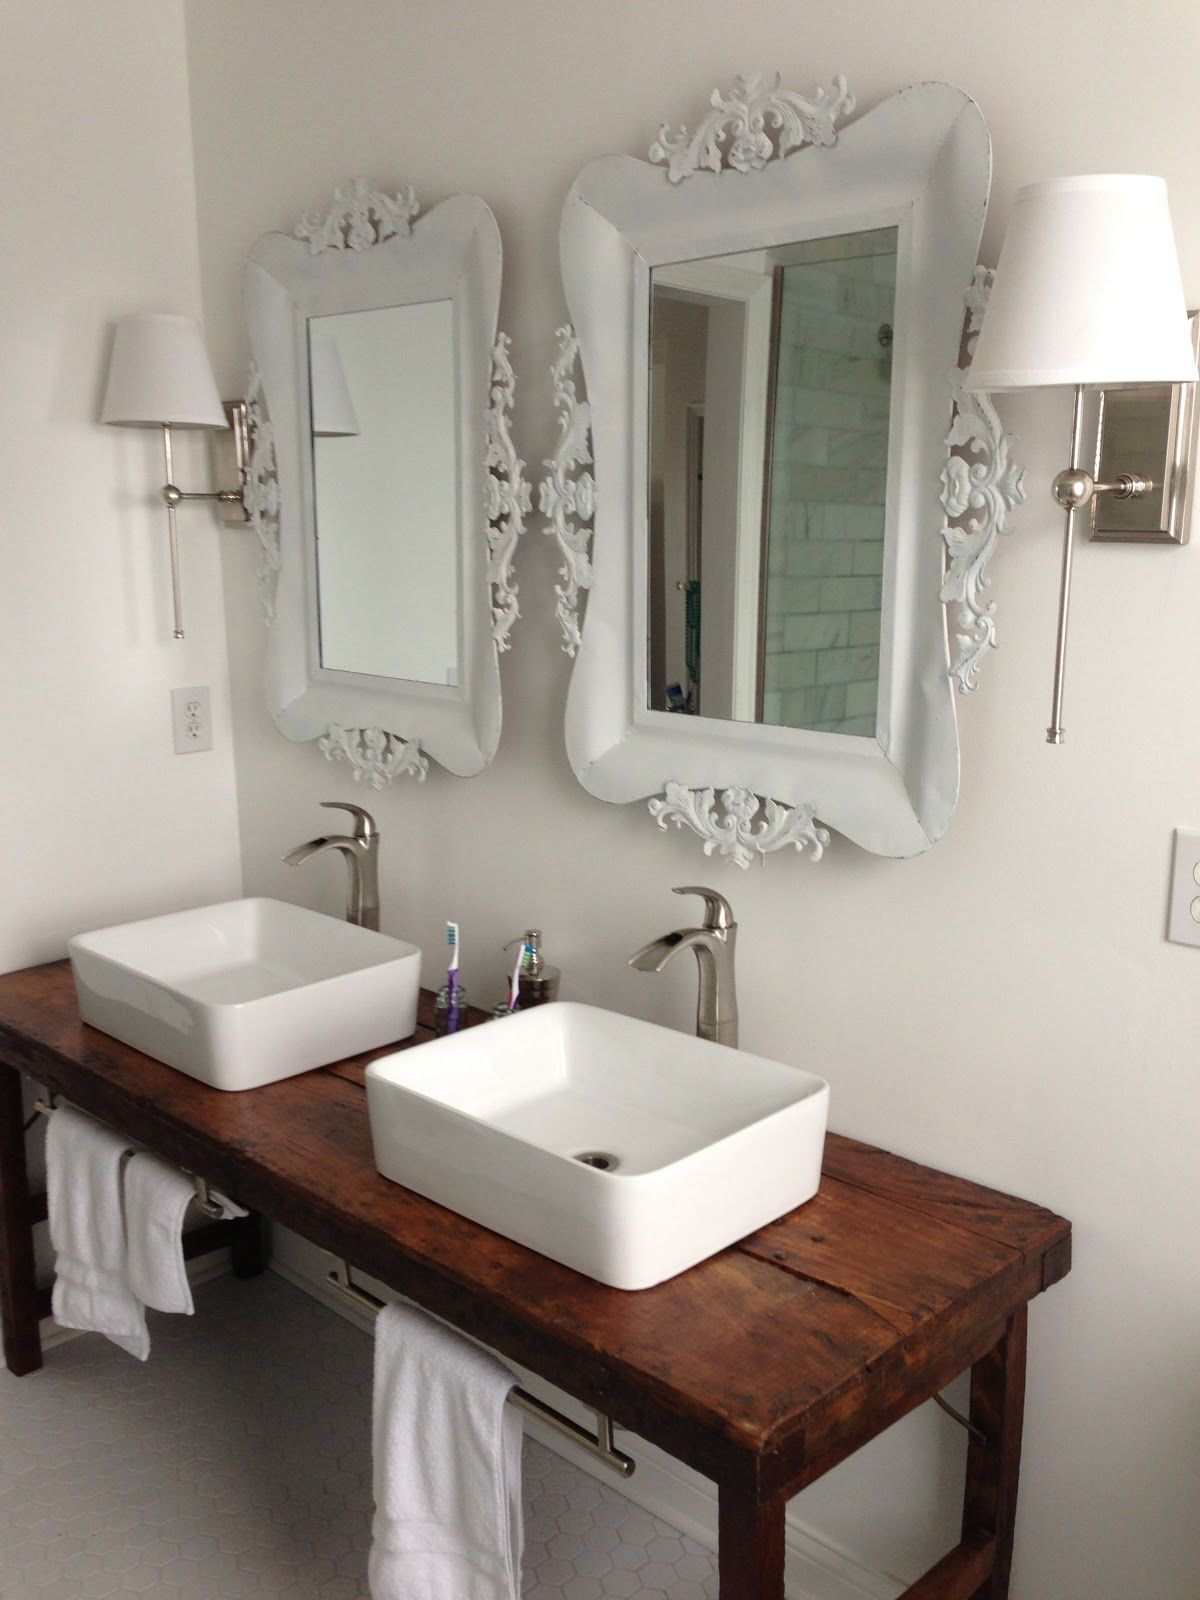 20 Clever Pedestal Sink Storage Design Ideas Bathrooms Remodel